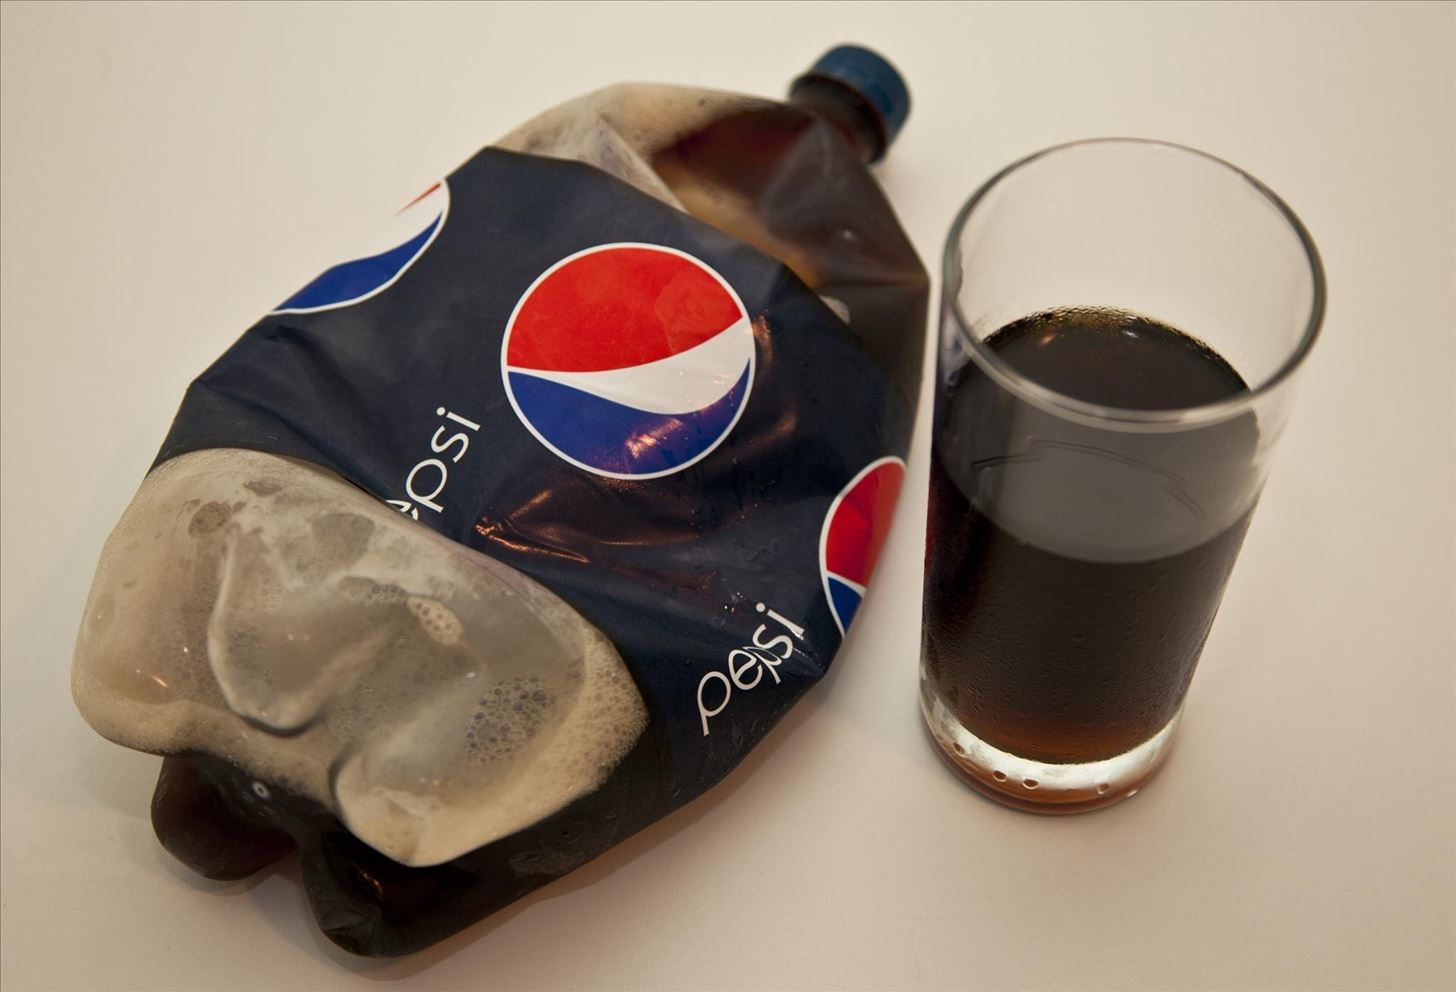 Tired of Flat Soda? Use This Trick to Keep Two-Liter Bottles of Soda Fizzy Longer